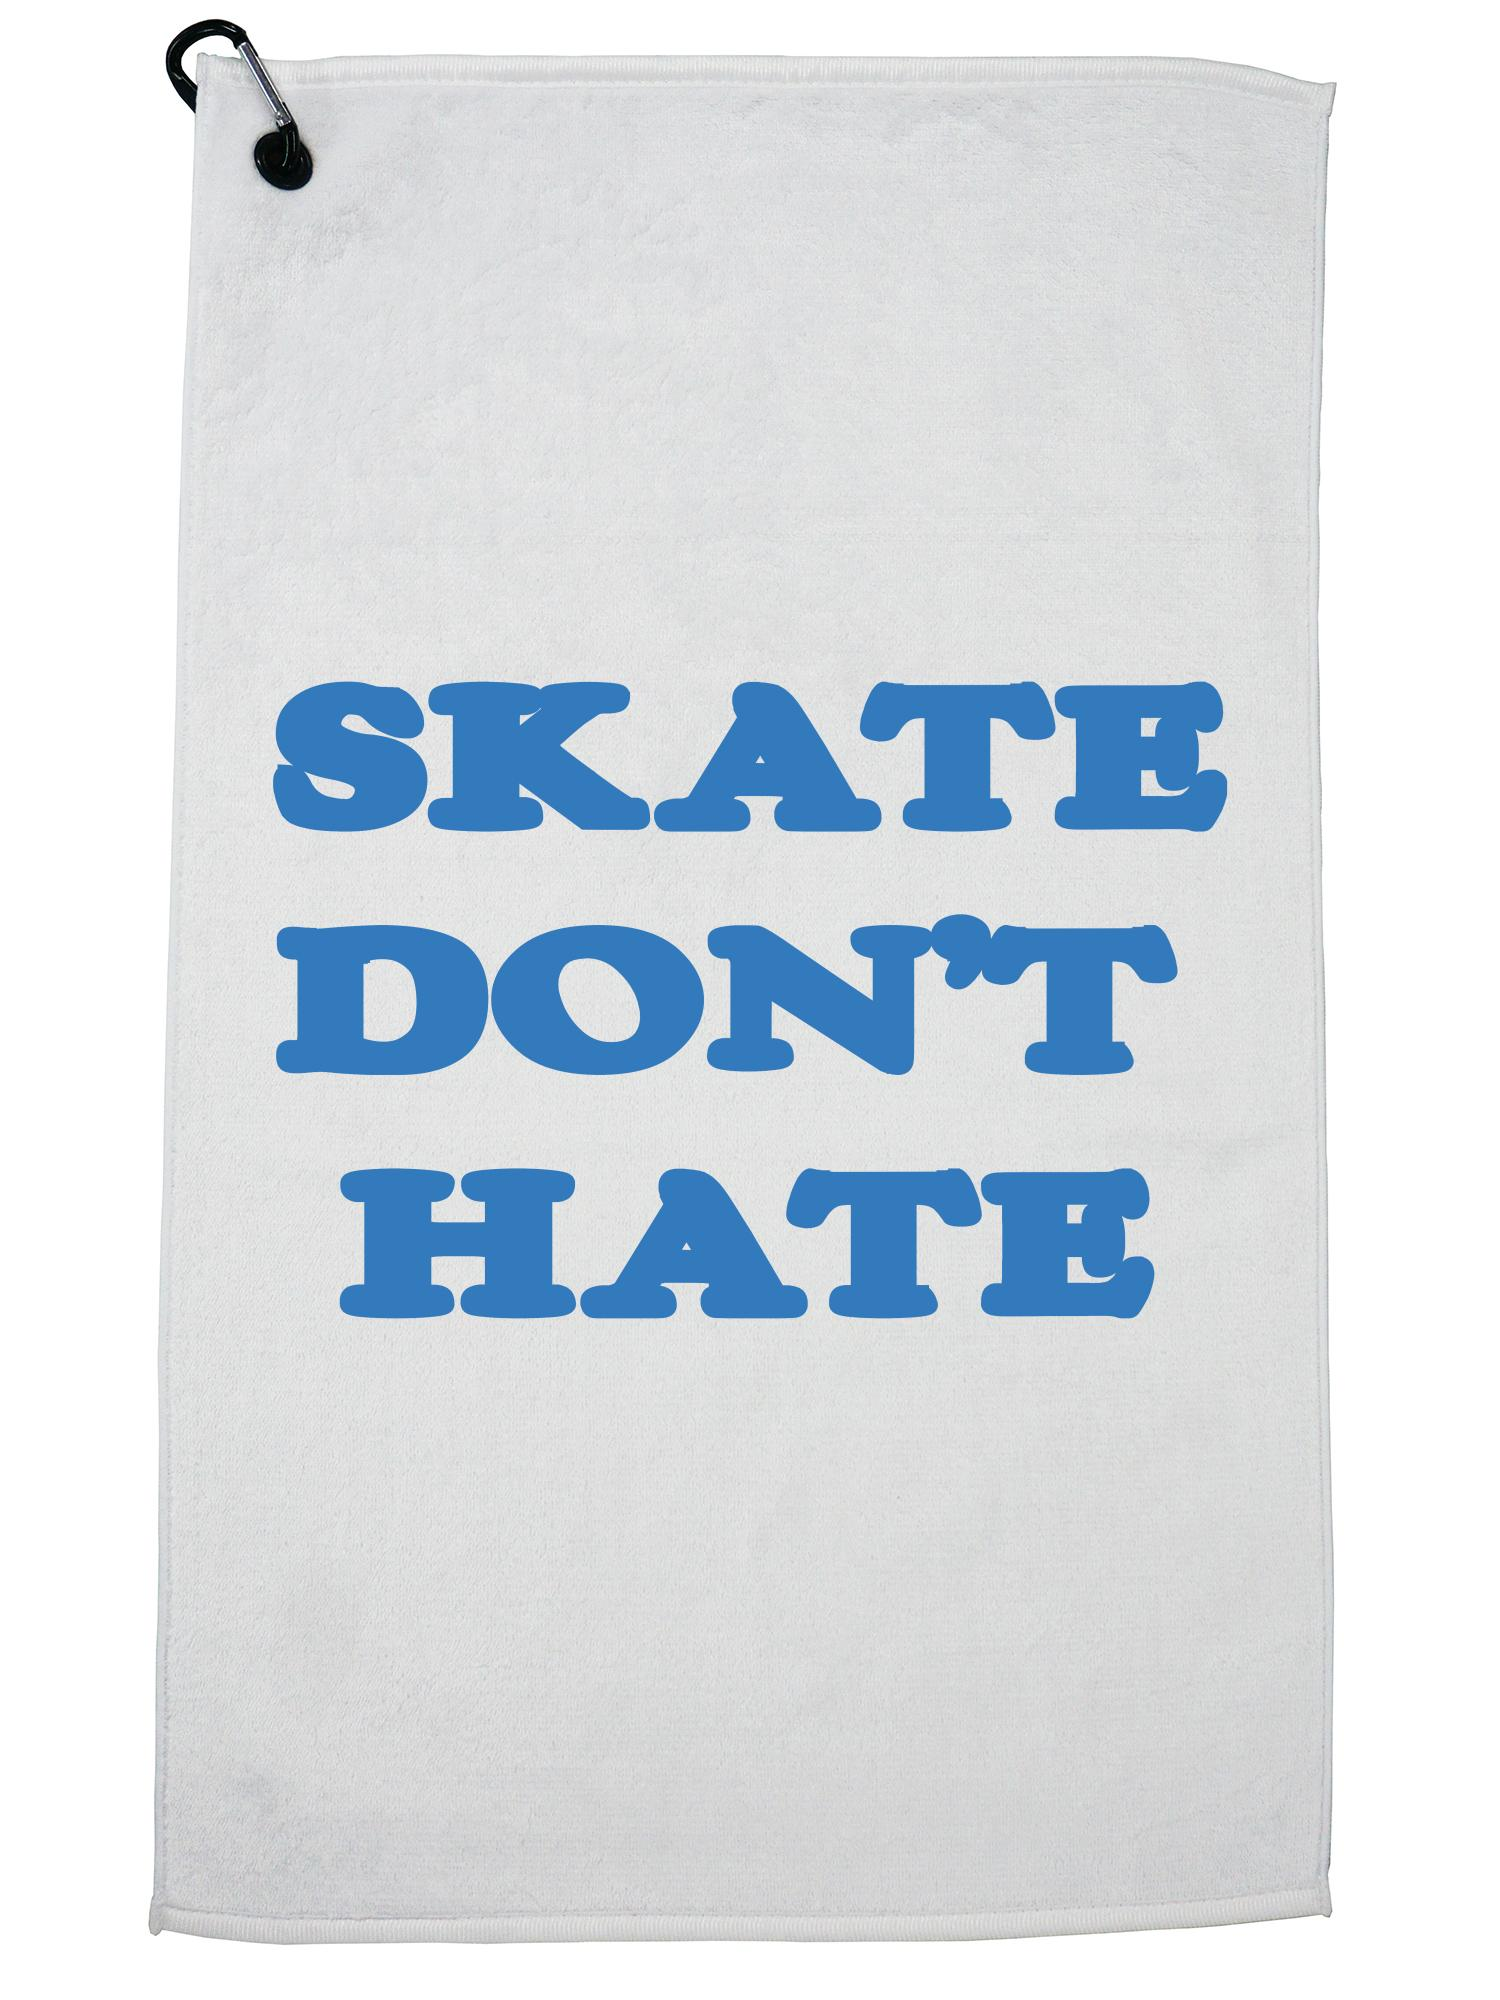 Skate Don't Hate Simple Skater Graphic Text Golf Towel with Carabiner Clip by Hollywood Thread